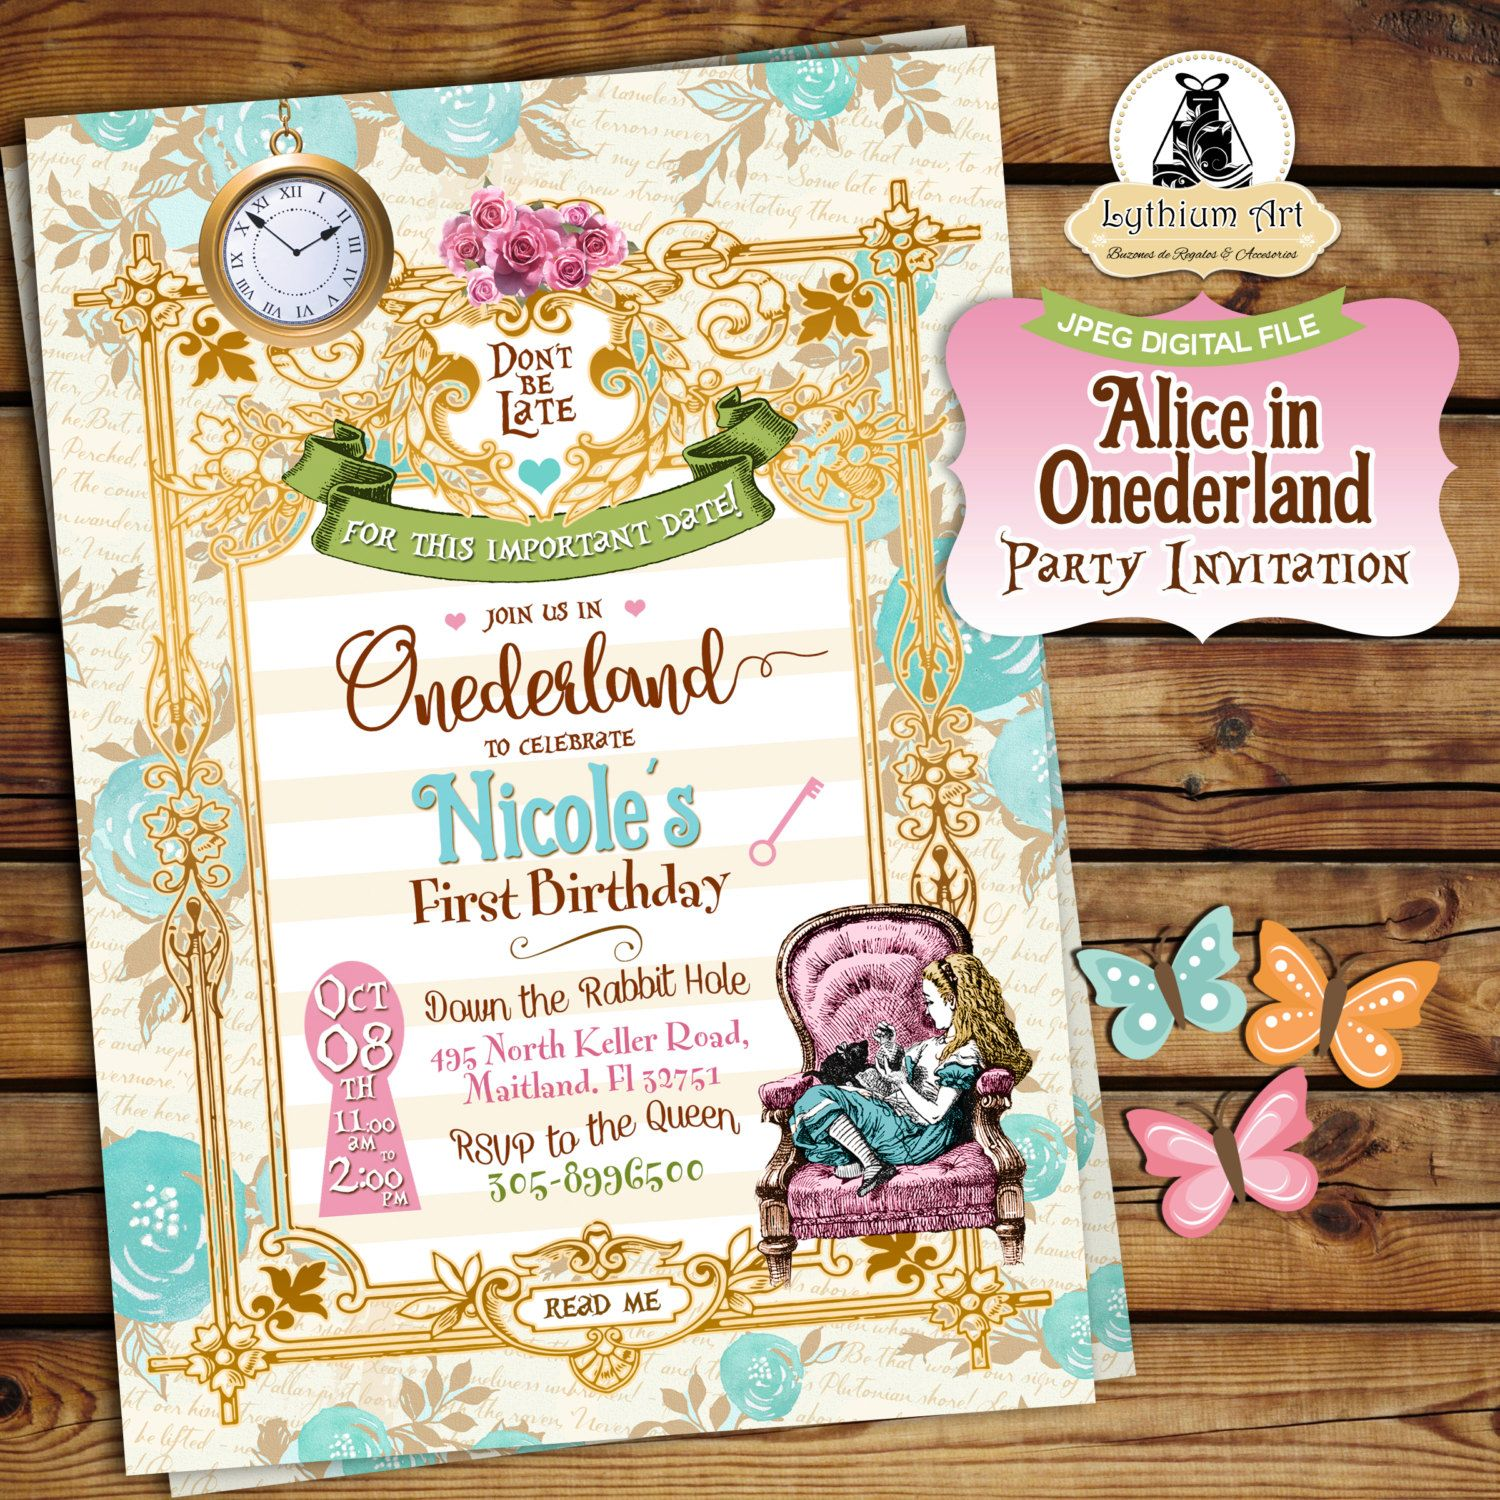 invitation words forst birthday party%0A Alice in Onederland Invitation  Alice in Wonderland Invitation  Free  Thank You u      st Birthday InvitationsParty